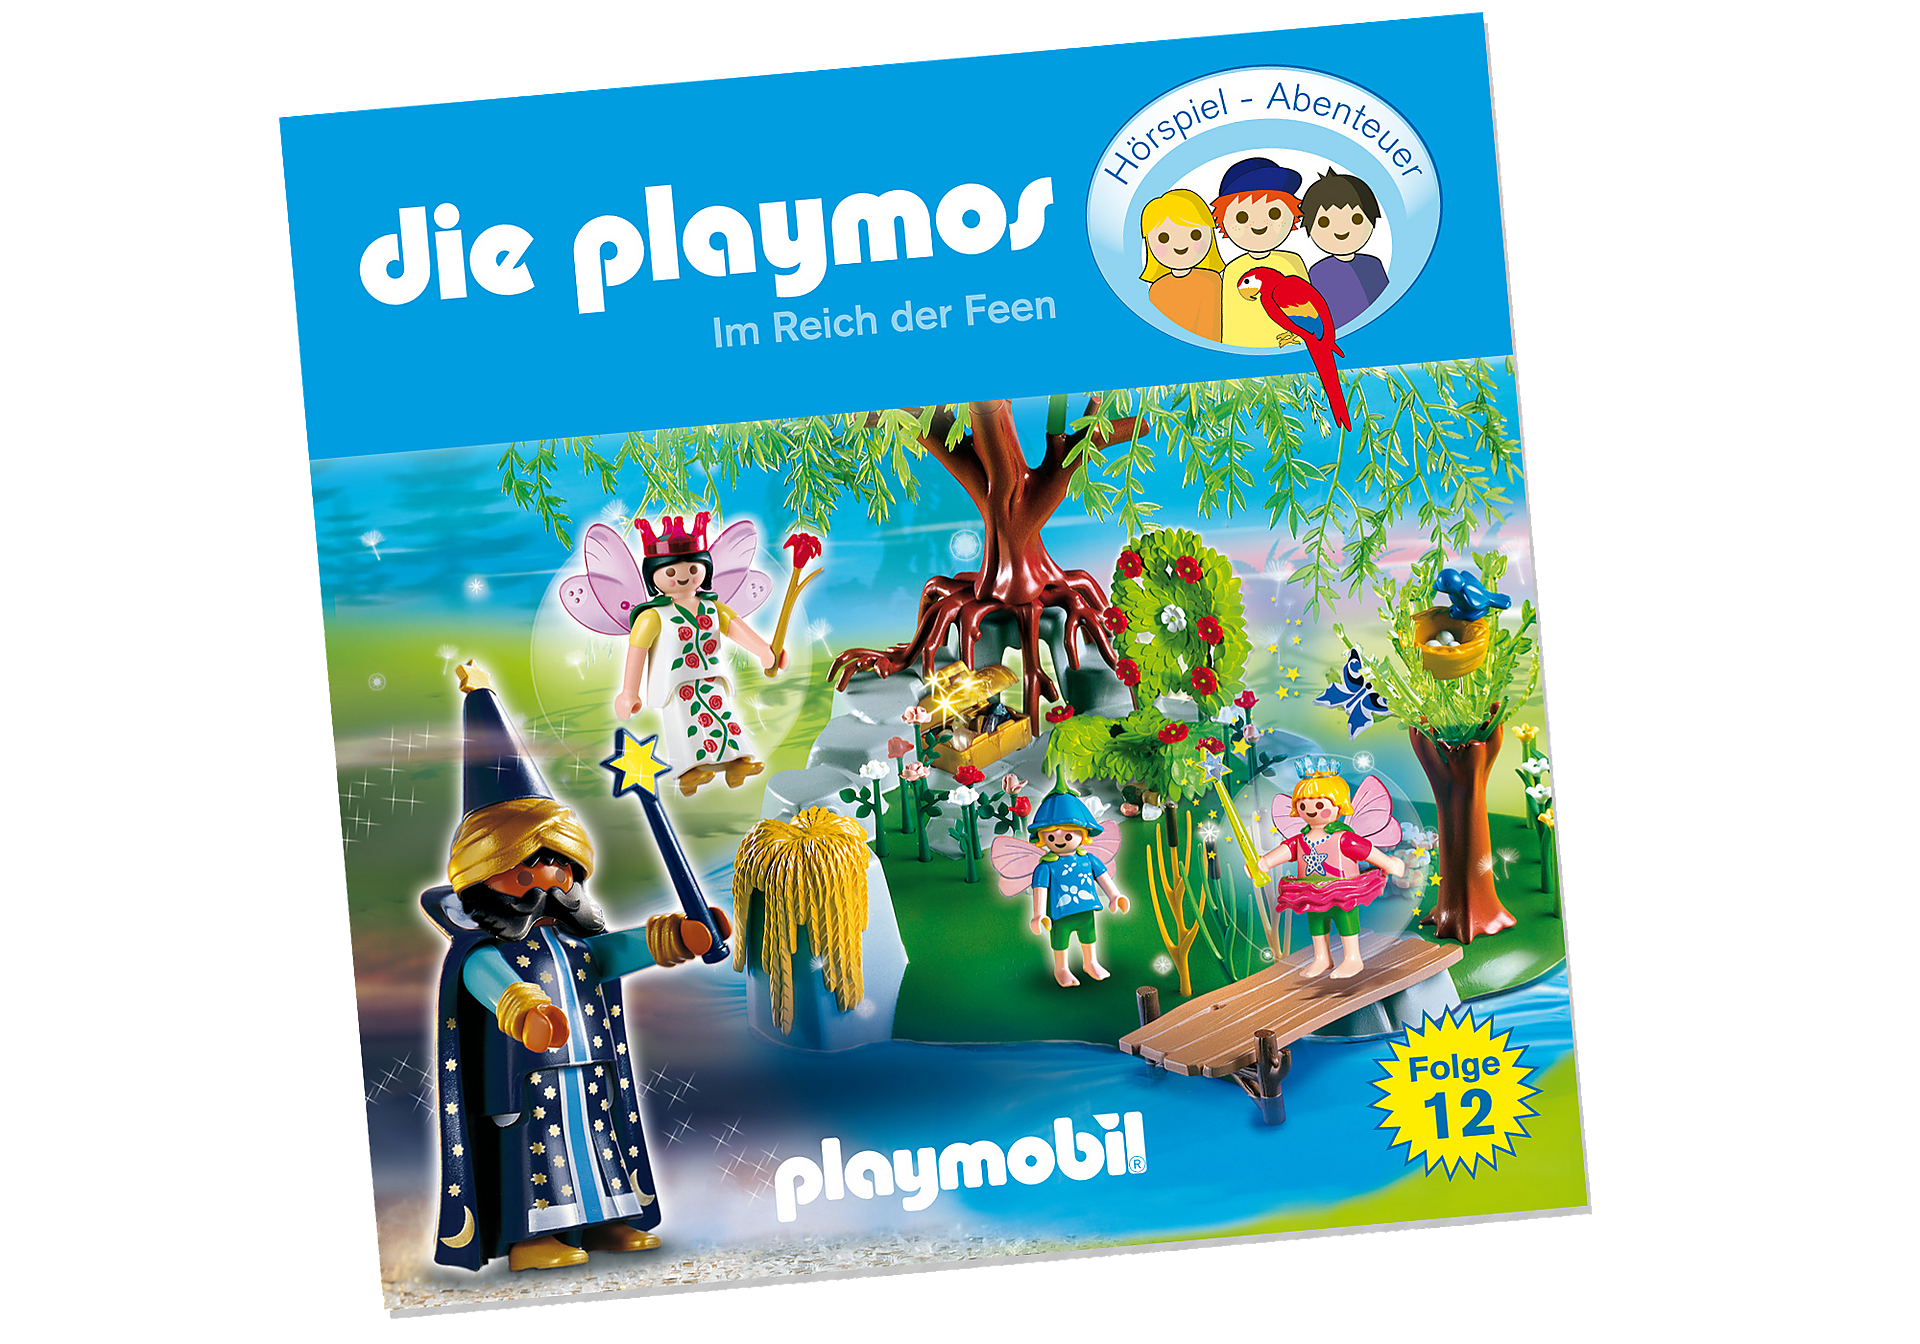 http://media.playmobil.com/i/playmobil/80200_product_detail/ Im Reich der Feen (12) - CD